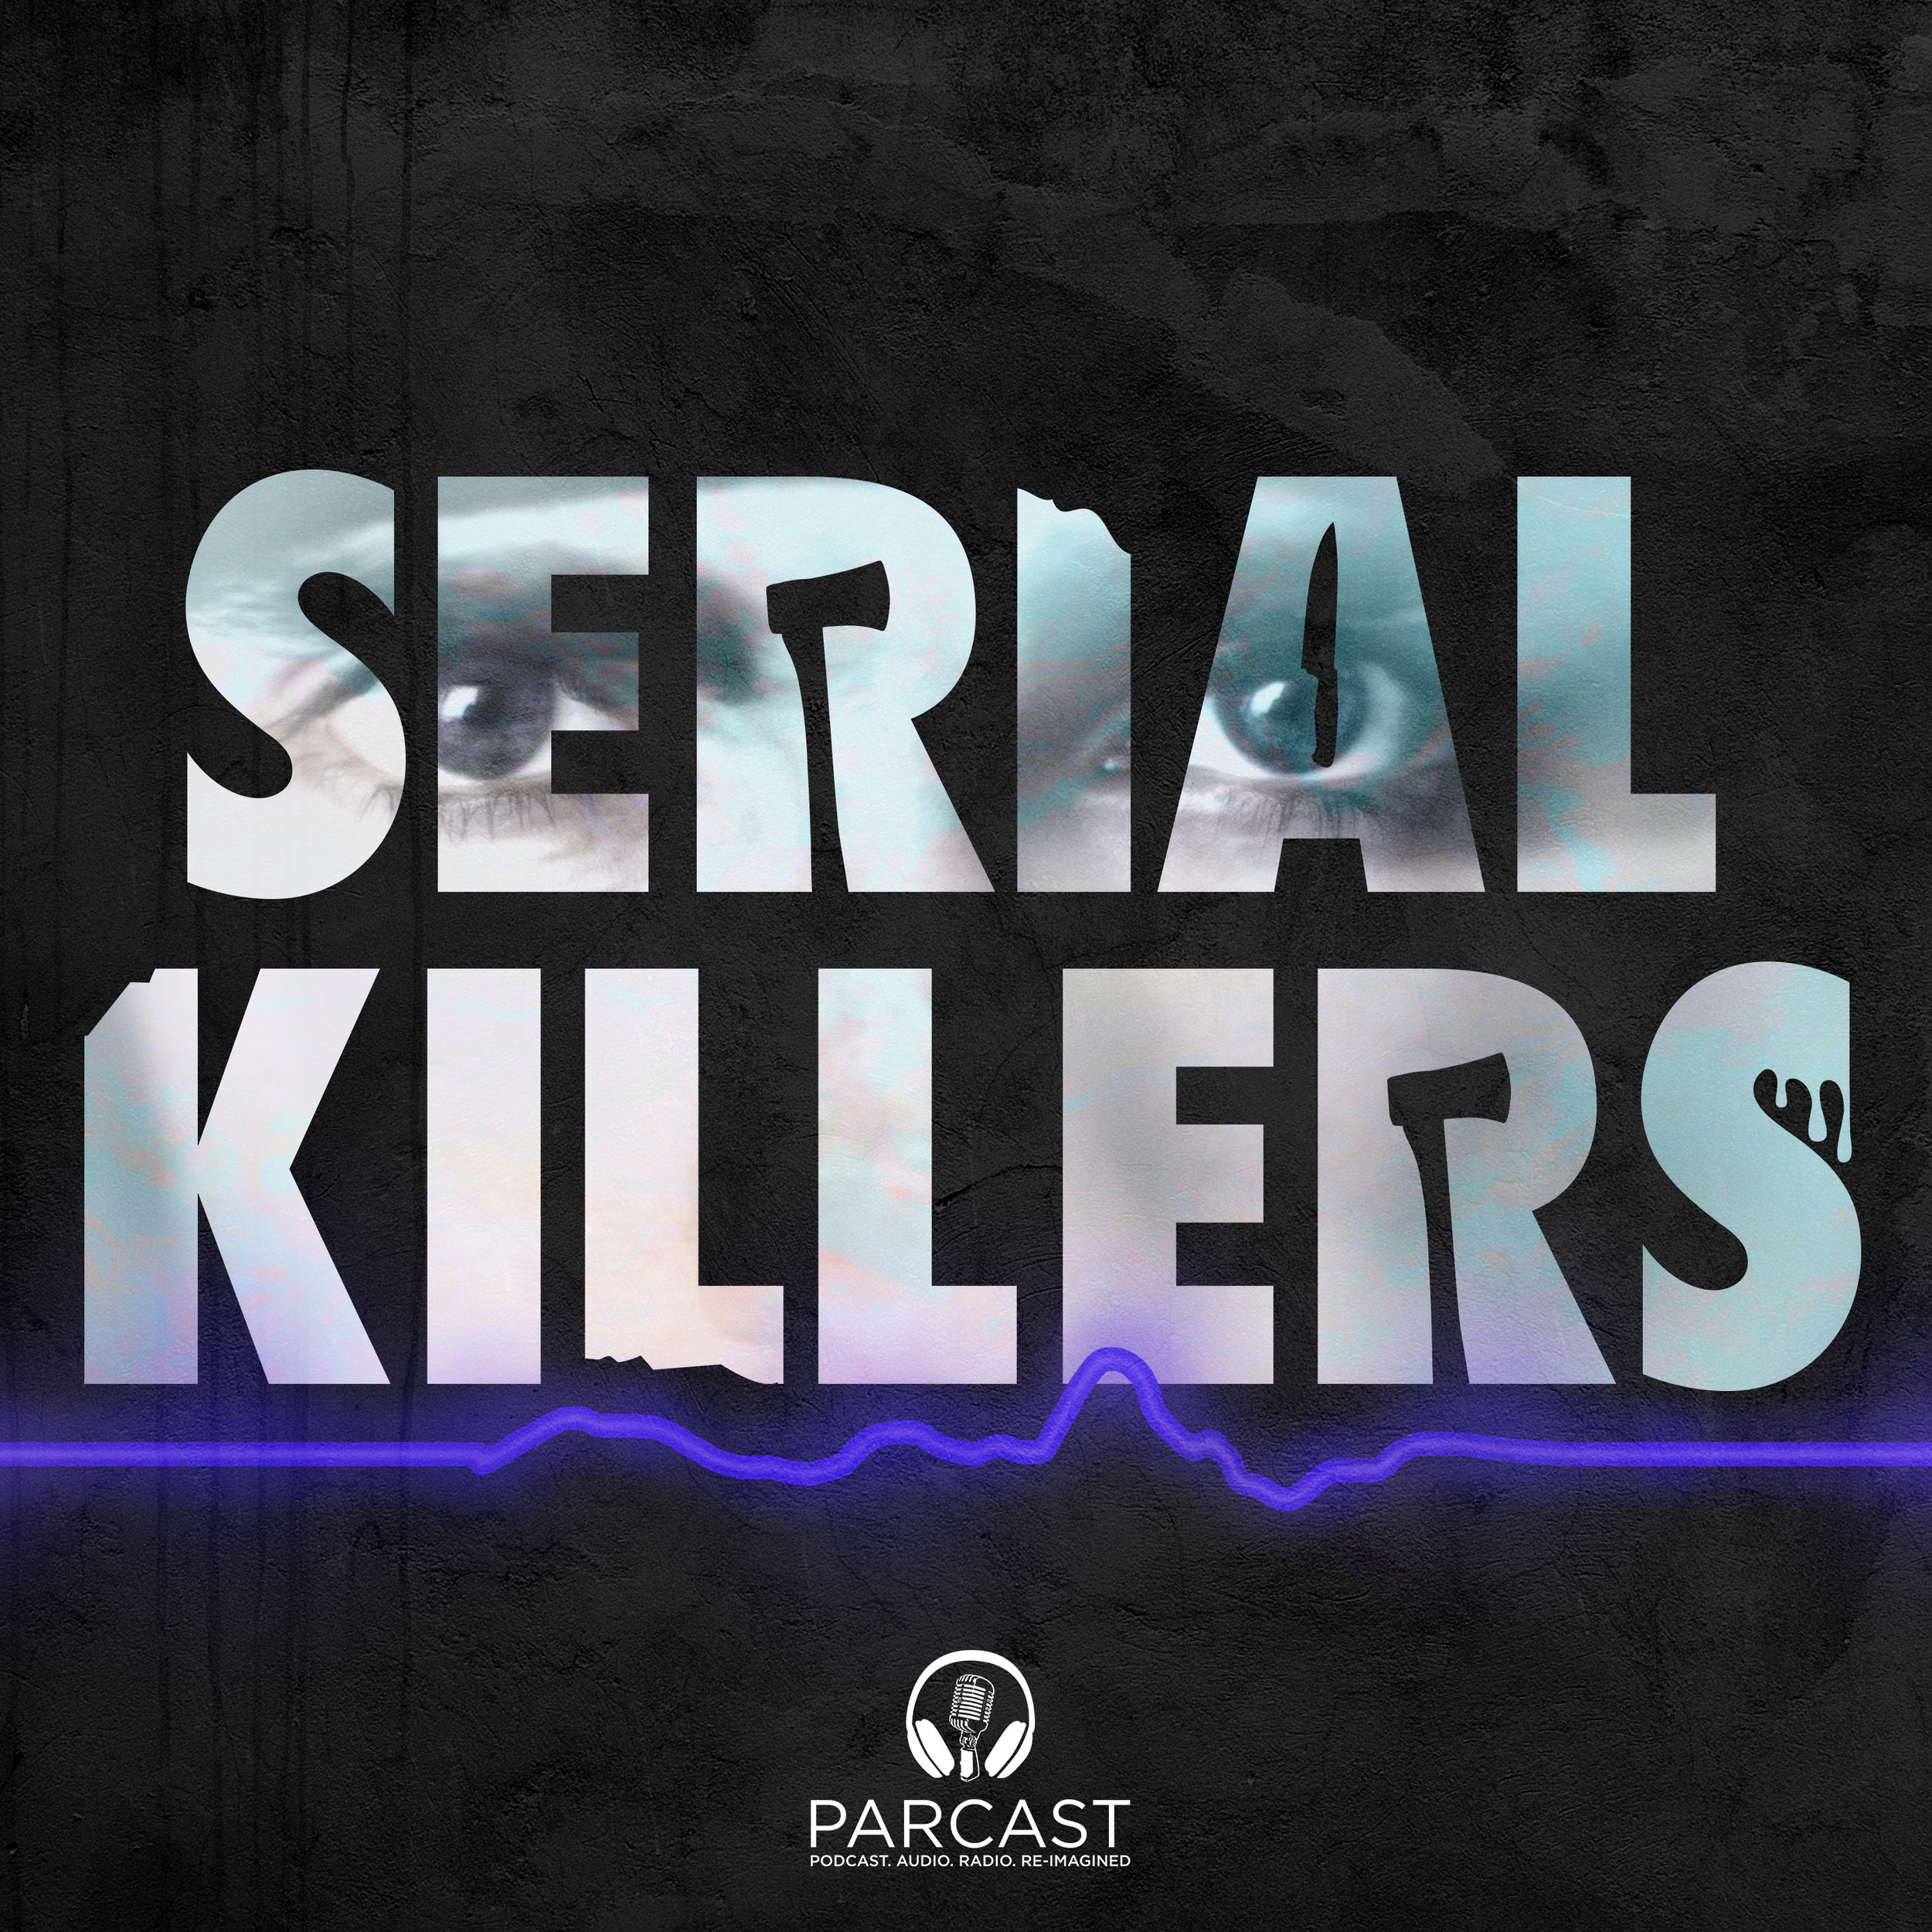 SerialKillers_artwork.jpg